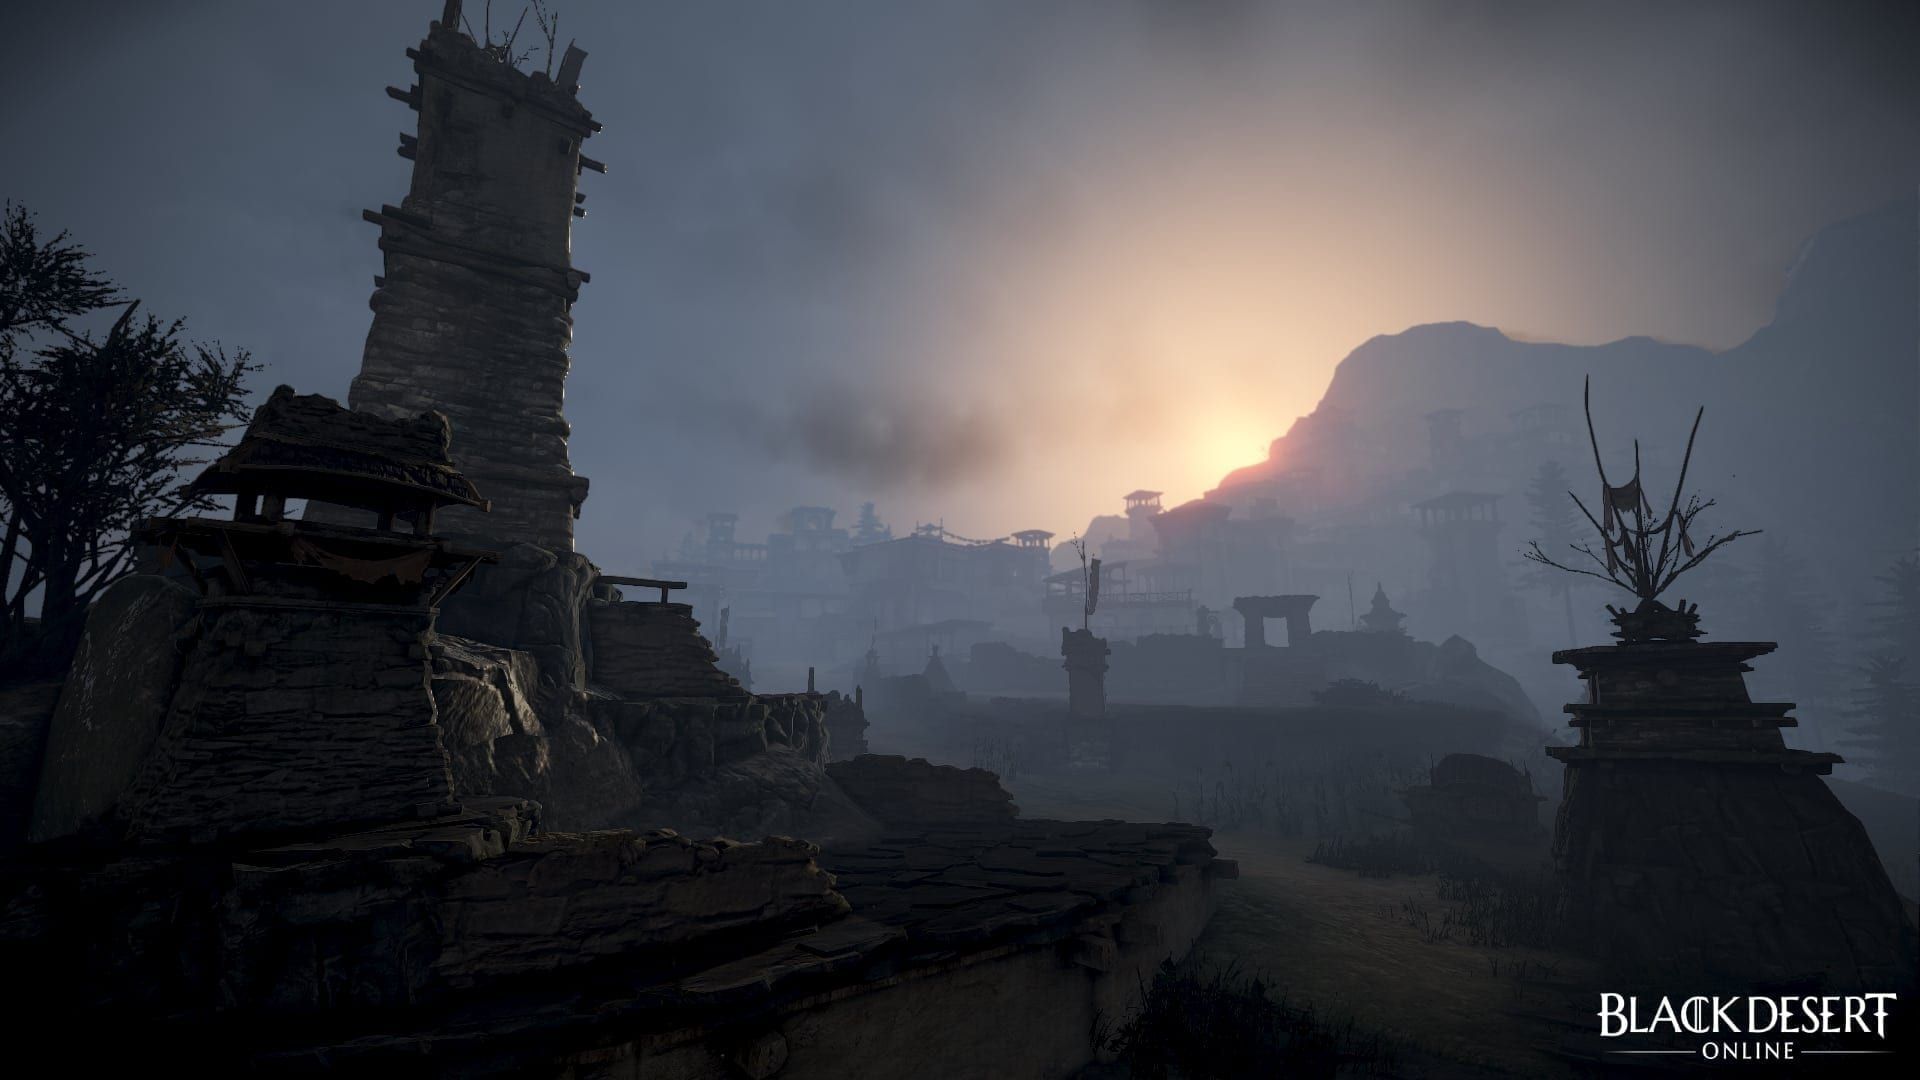 Drieghan node names on bdocodex some more blackdesertonline 62 comments share save gumiabroncs Image collections